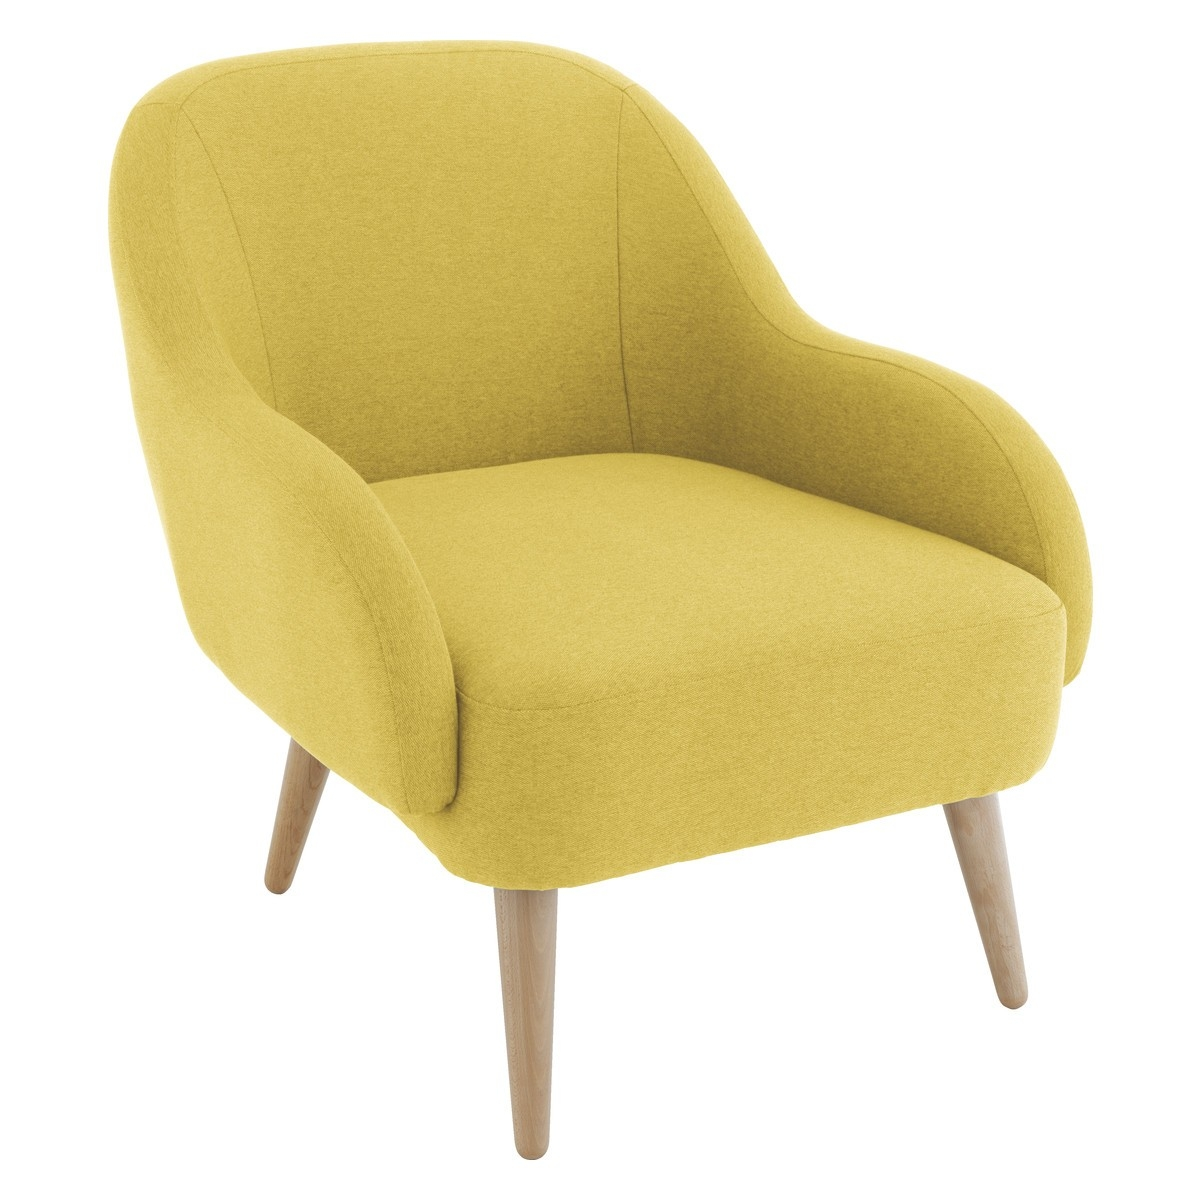 Momo Saffron Yellow Fabric Armchair Buy Now At Habitat Uk Within Fabric Armchairs (Image 14 of 15)